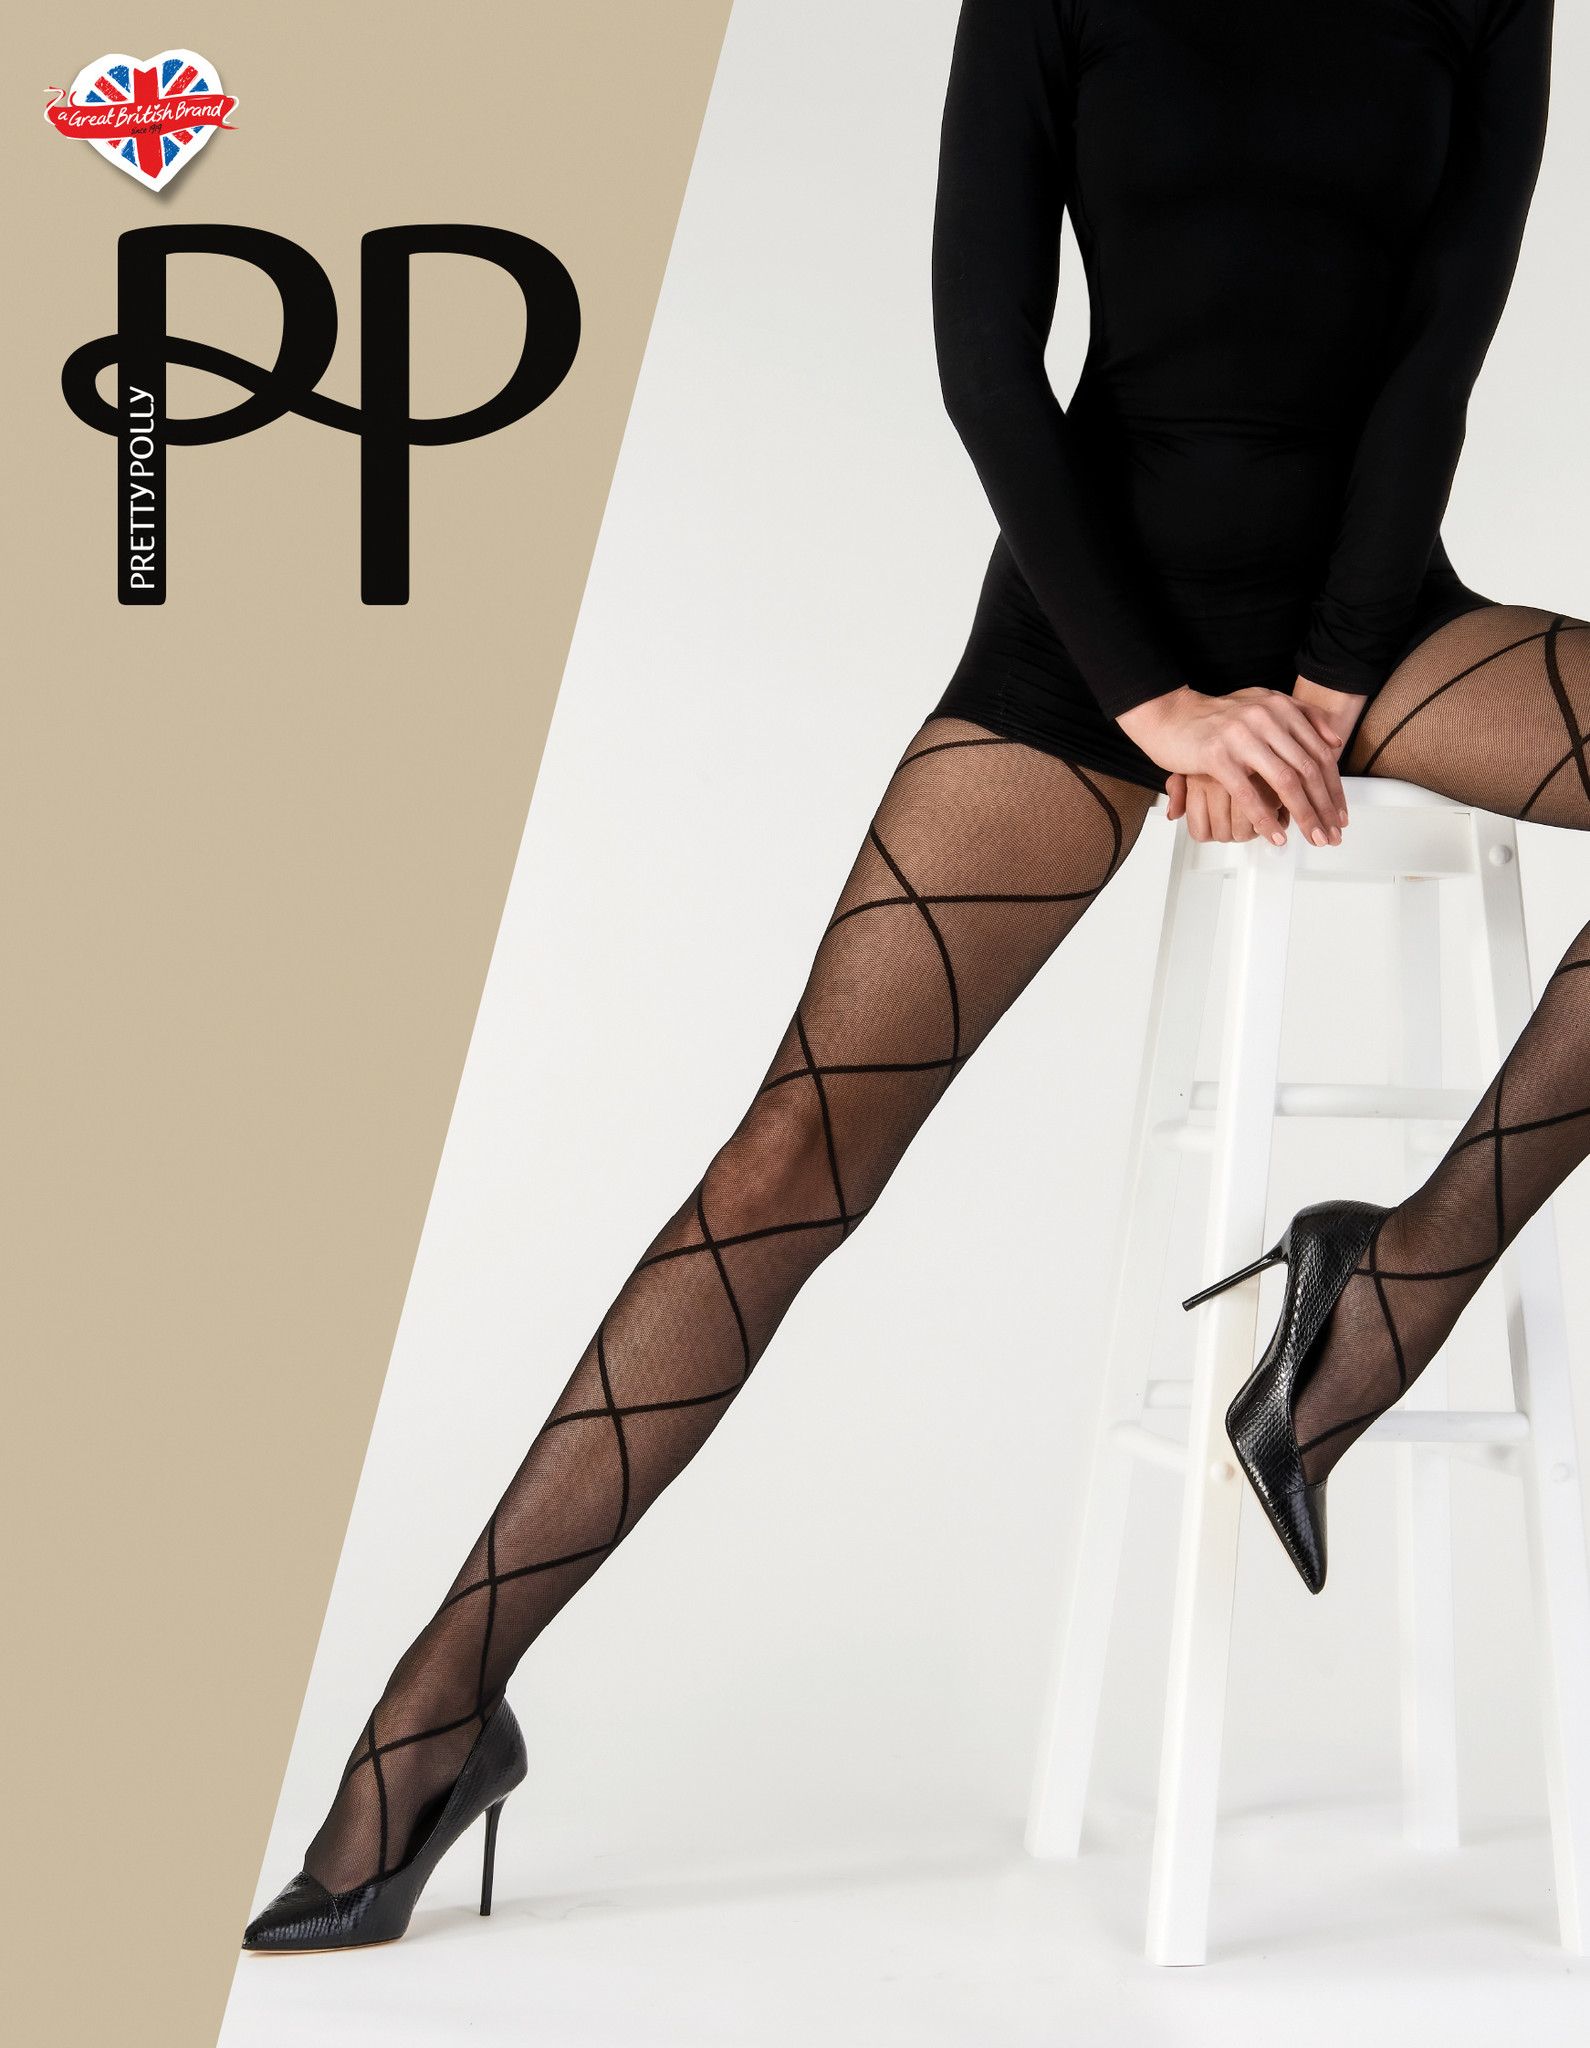 Pretty Polly Pretty Polly Diamond Mesh Panty Zwart - One Size